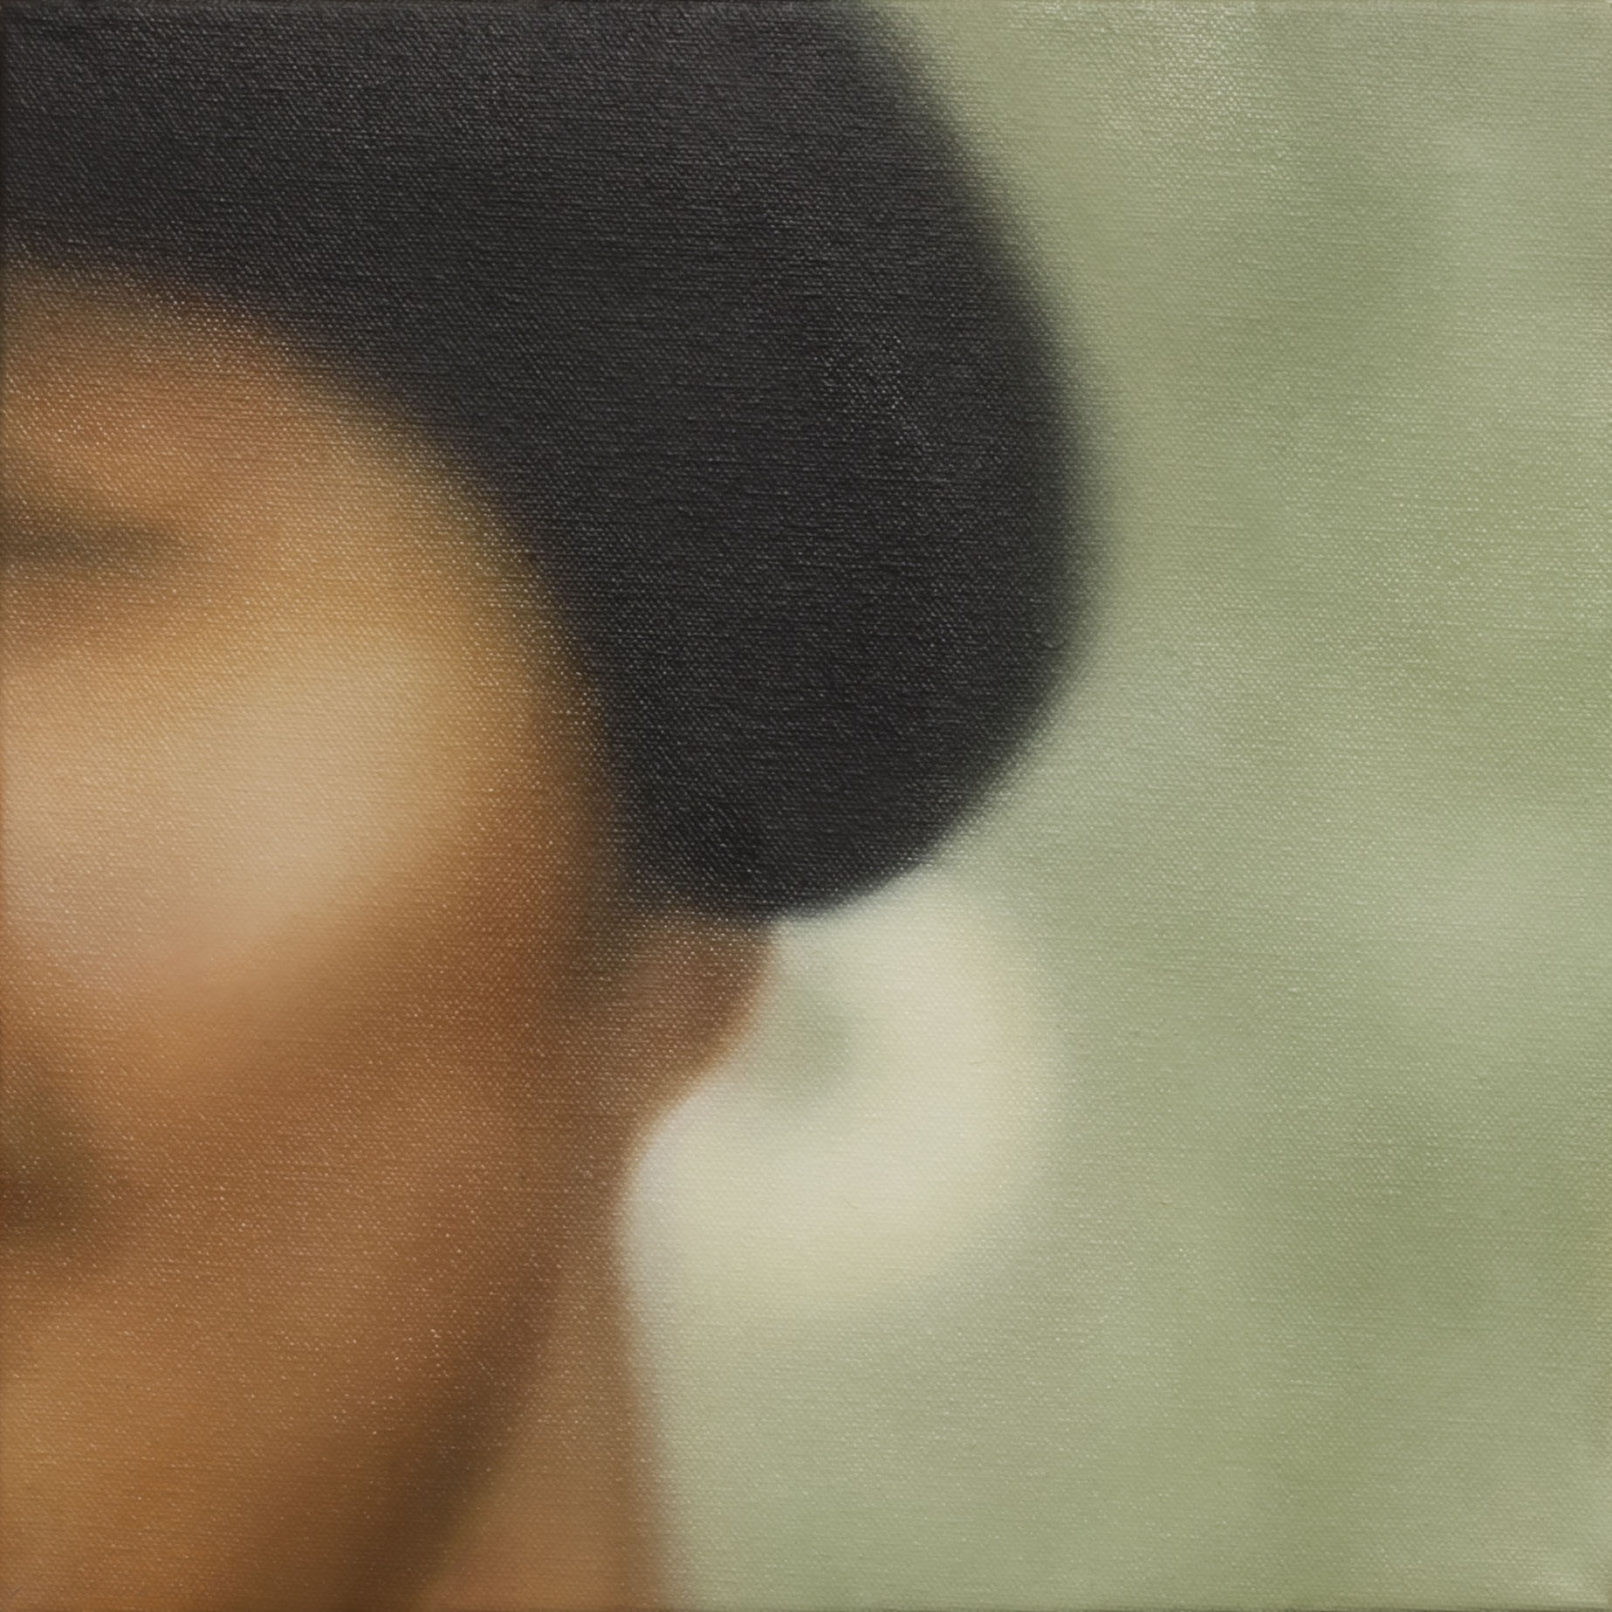 Lance Smith | When I'm With You (detail) | oil on canvas